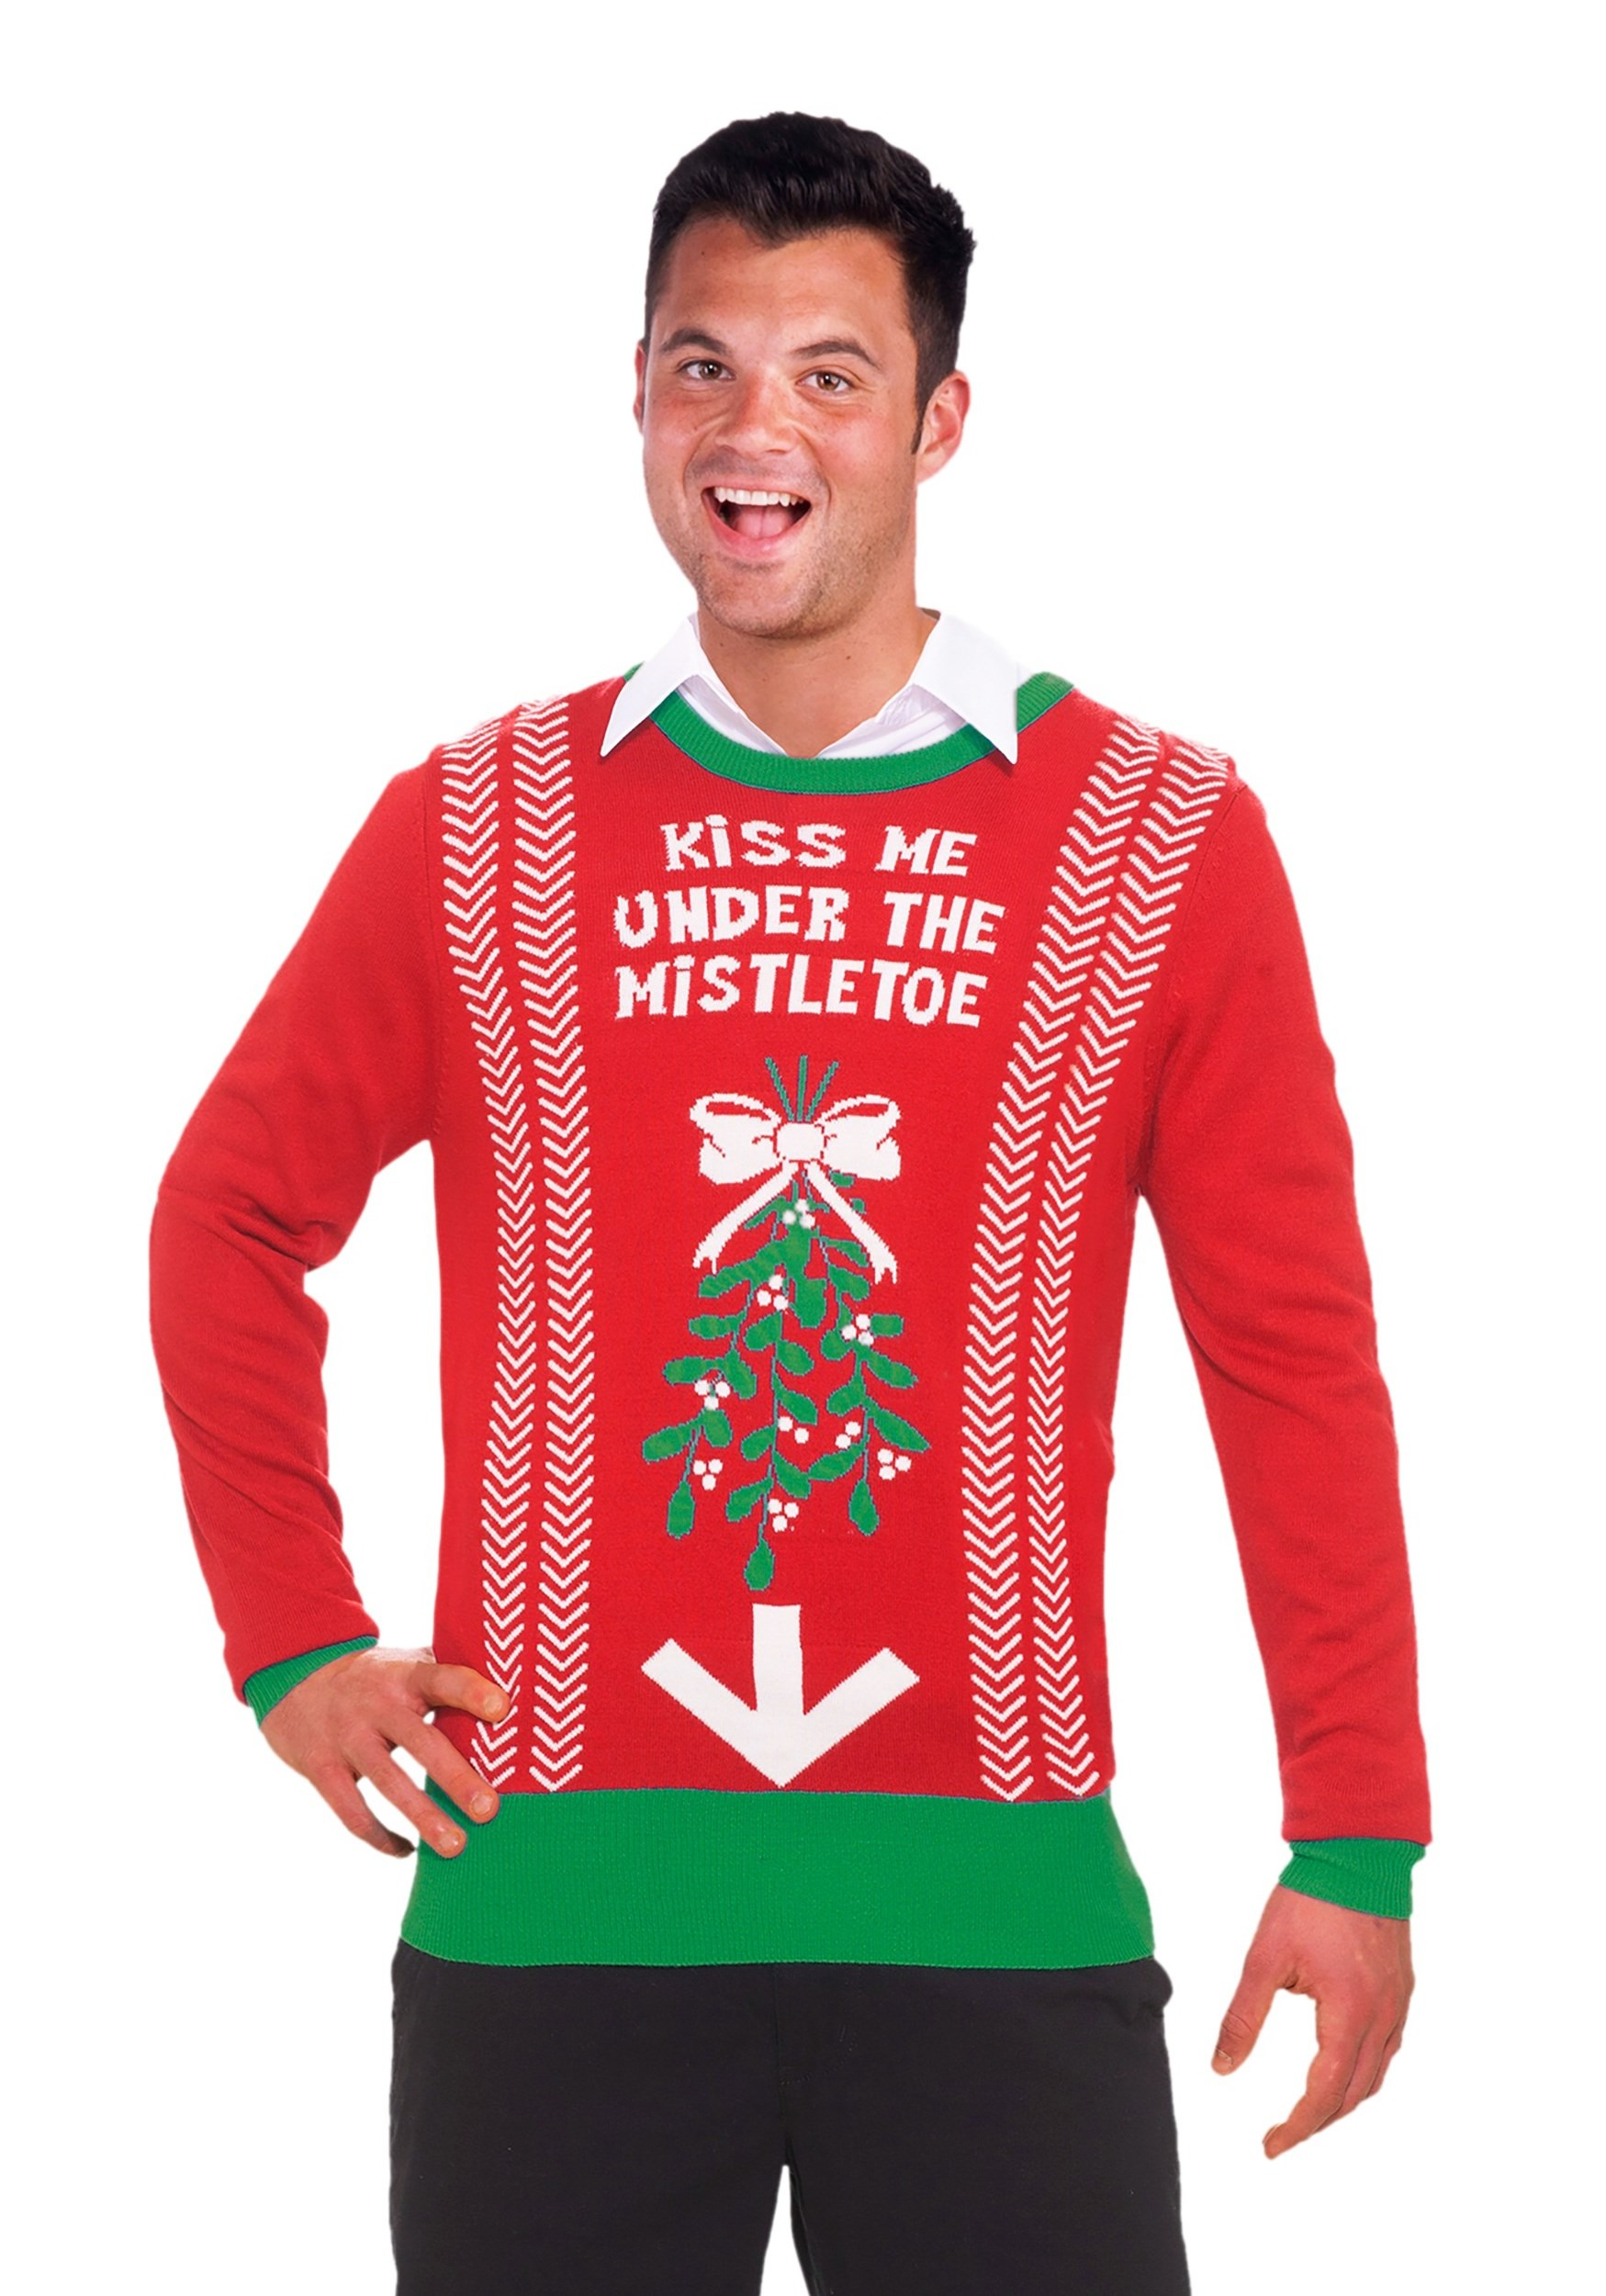 kiss me under the mistletoe ugly christmas sweaterkiss me under the mistletoe christmas sweater